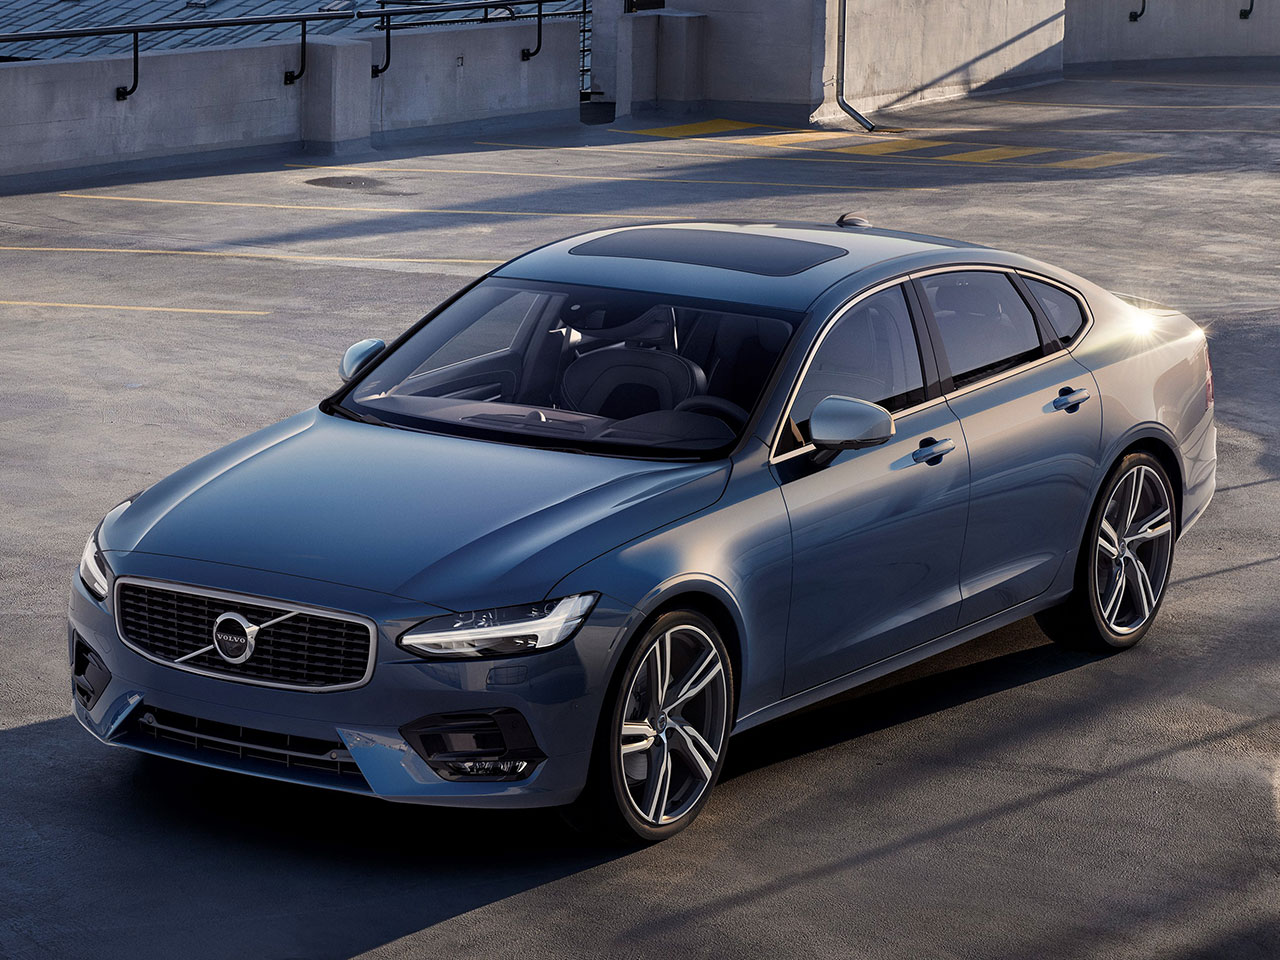 2020 Volvo S90 Release Date and Concept